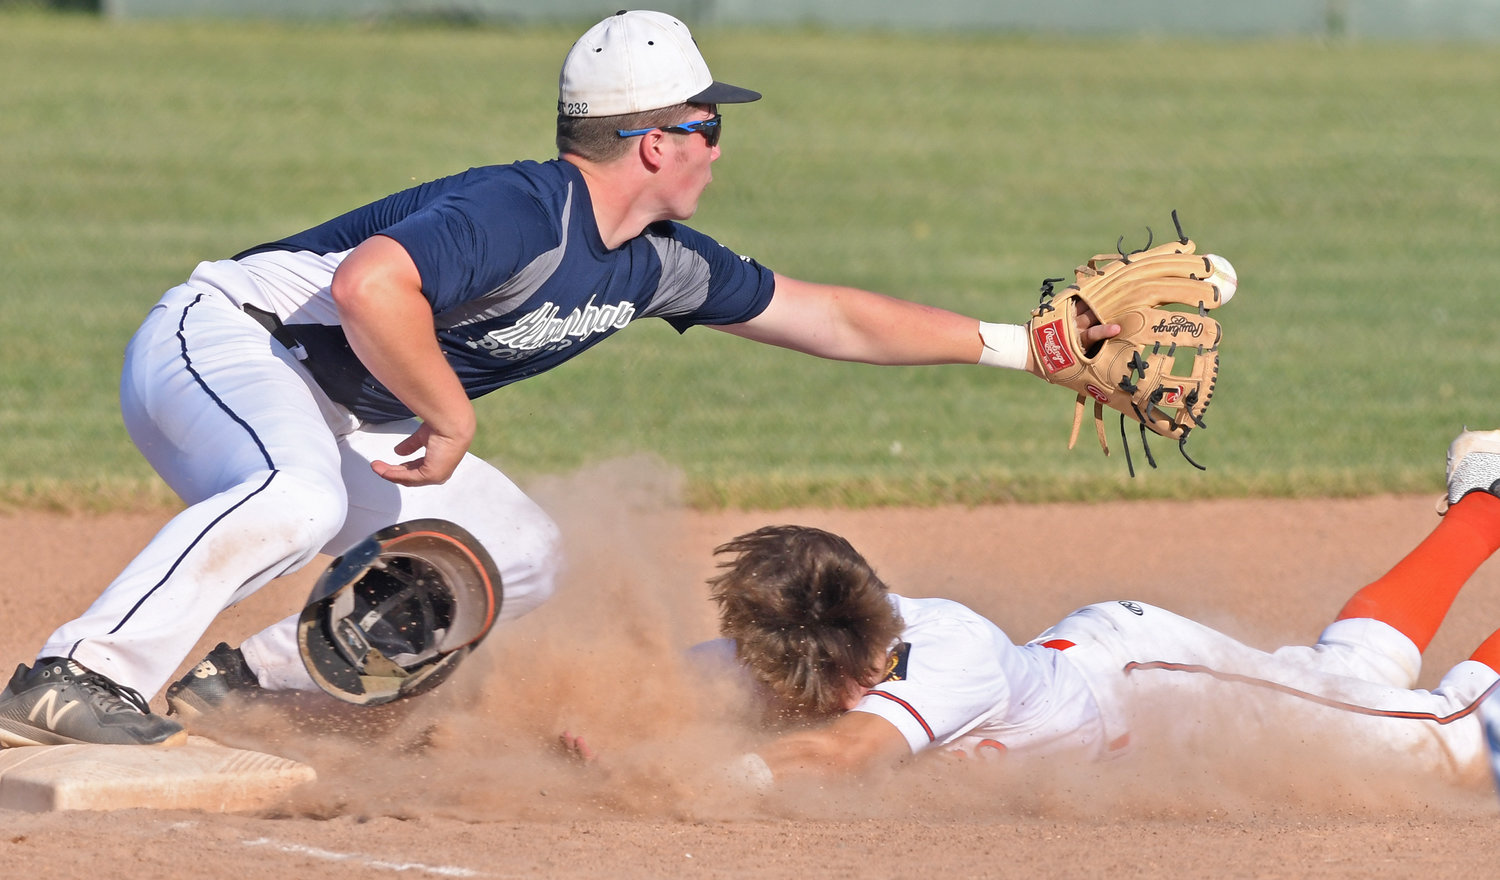 IN THERE — Smith Post's Riley Brawdy slides safely into third base just before the ball hits the glove of Helmuth-Ingalls third baseman Kodie Abrams. Brawdy had a hit, a run batted in and two runs scored as Smith won at home 12-2 Monday night.